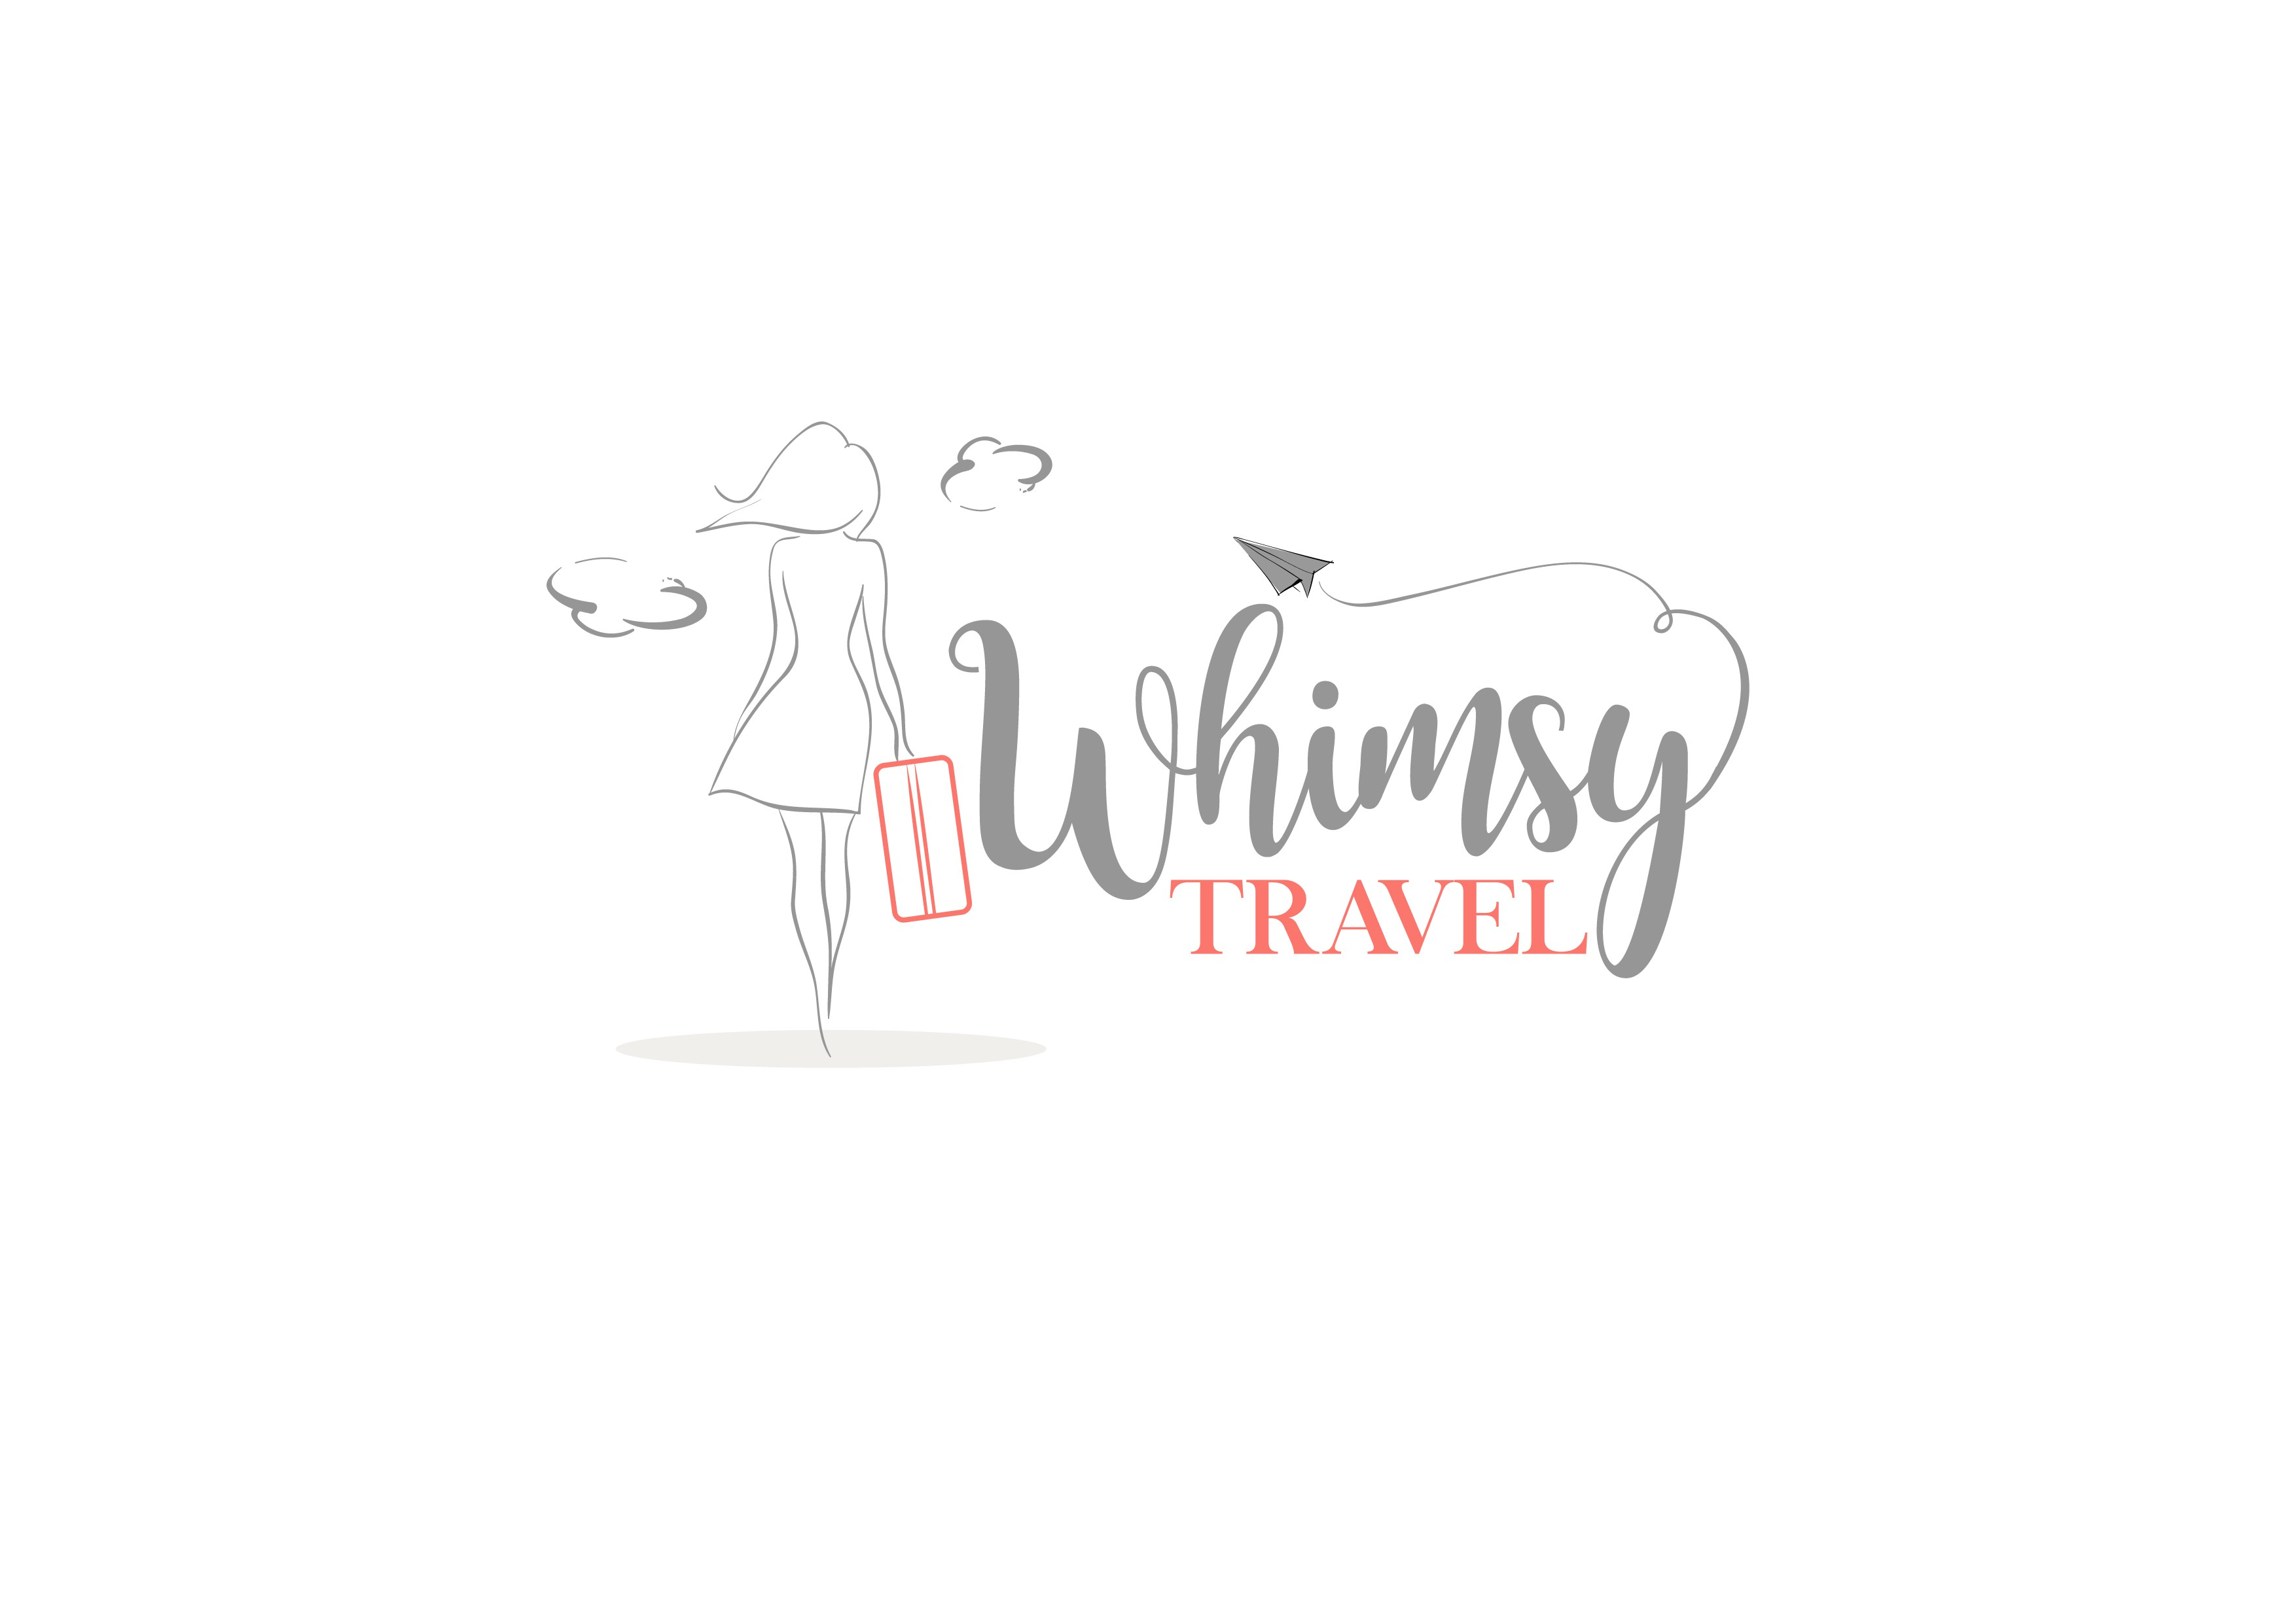 Upbeat Travel Agency seeking colorful & vibrant logo